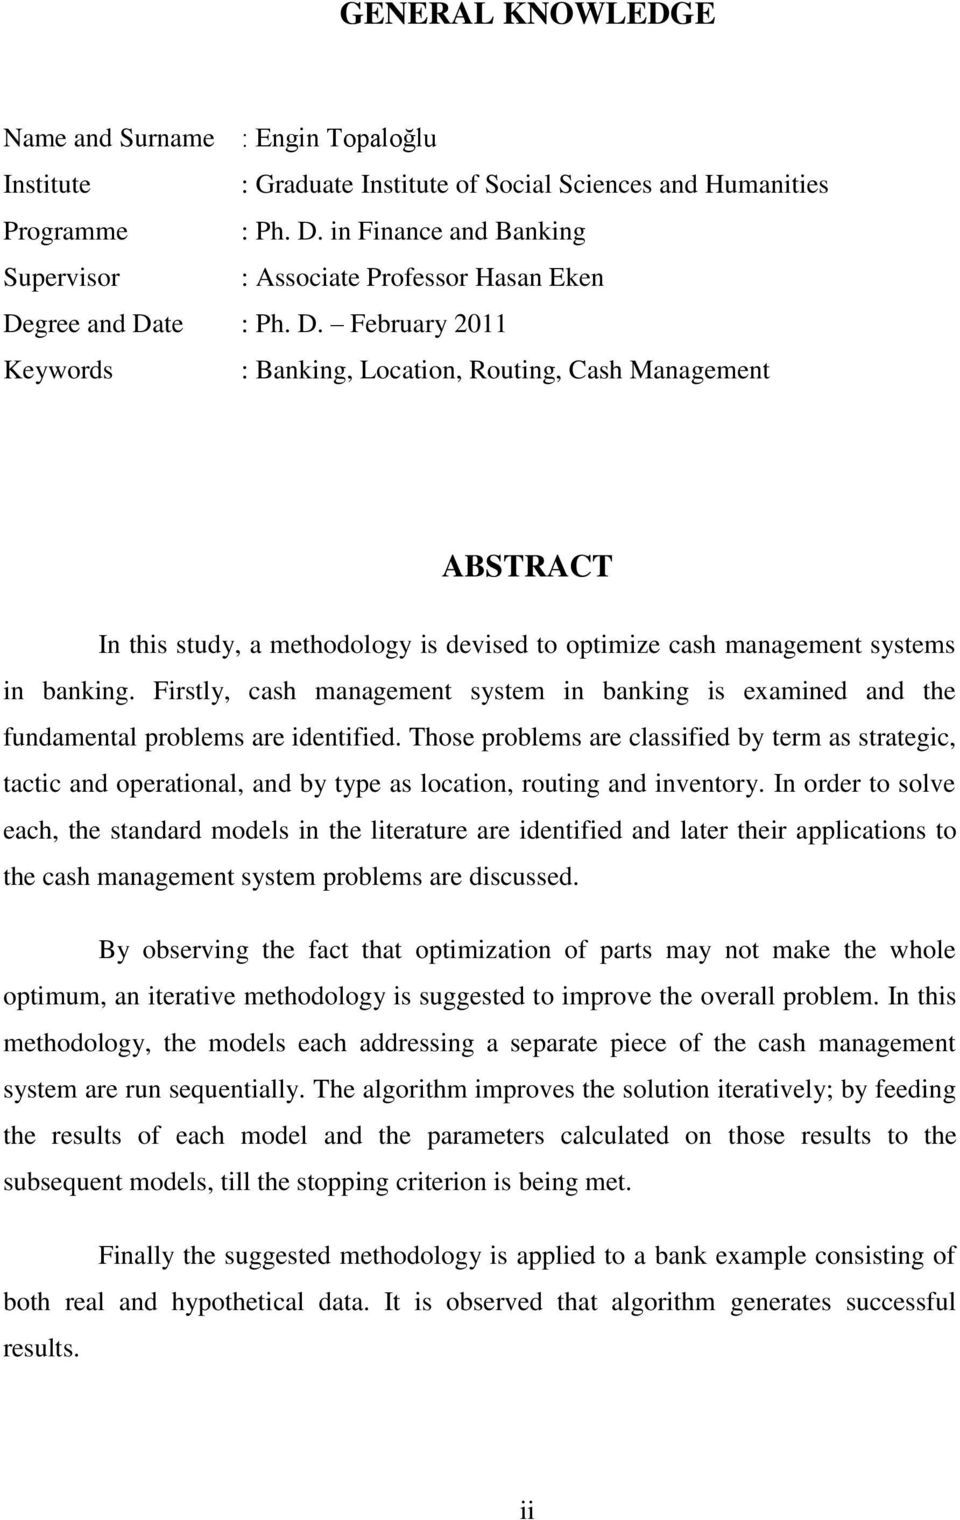 gree and Date : Ph. D. February 2011 Keywords : Banking, Location, Routing, Cash Management ABSTRACT In this study, a methodology is devised to optimize cash management systems in banking.